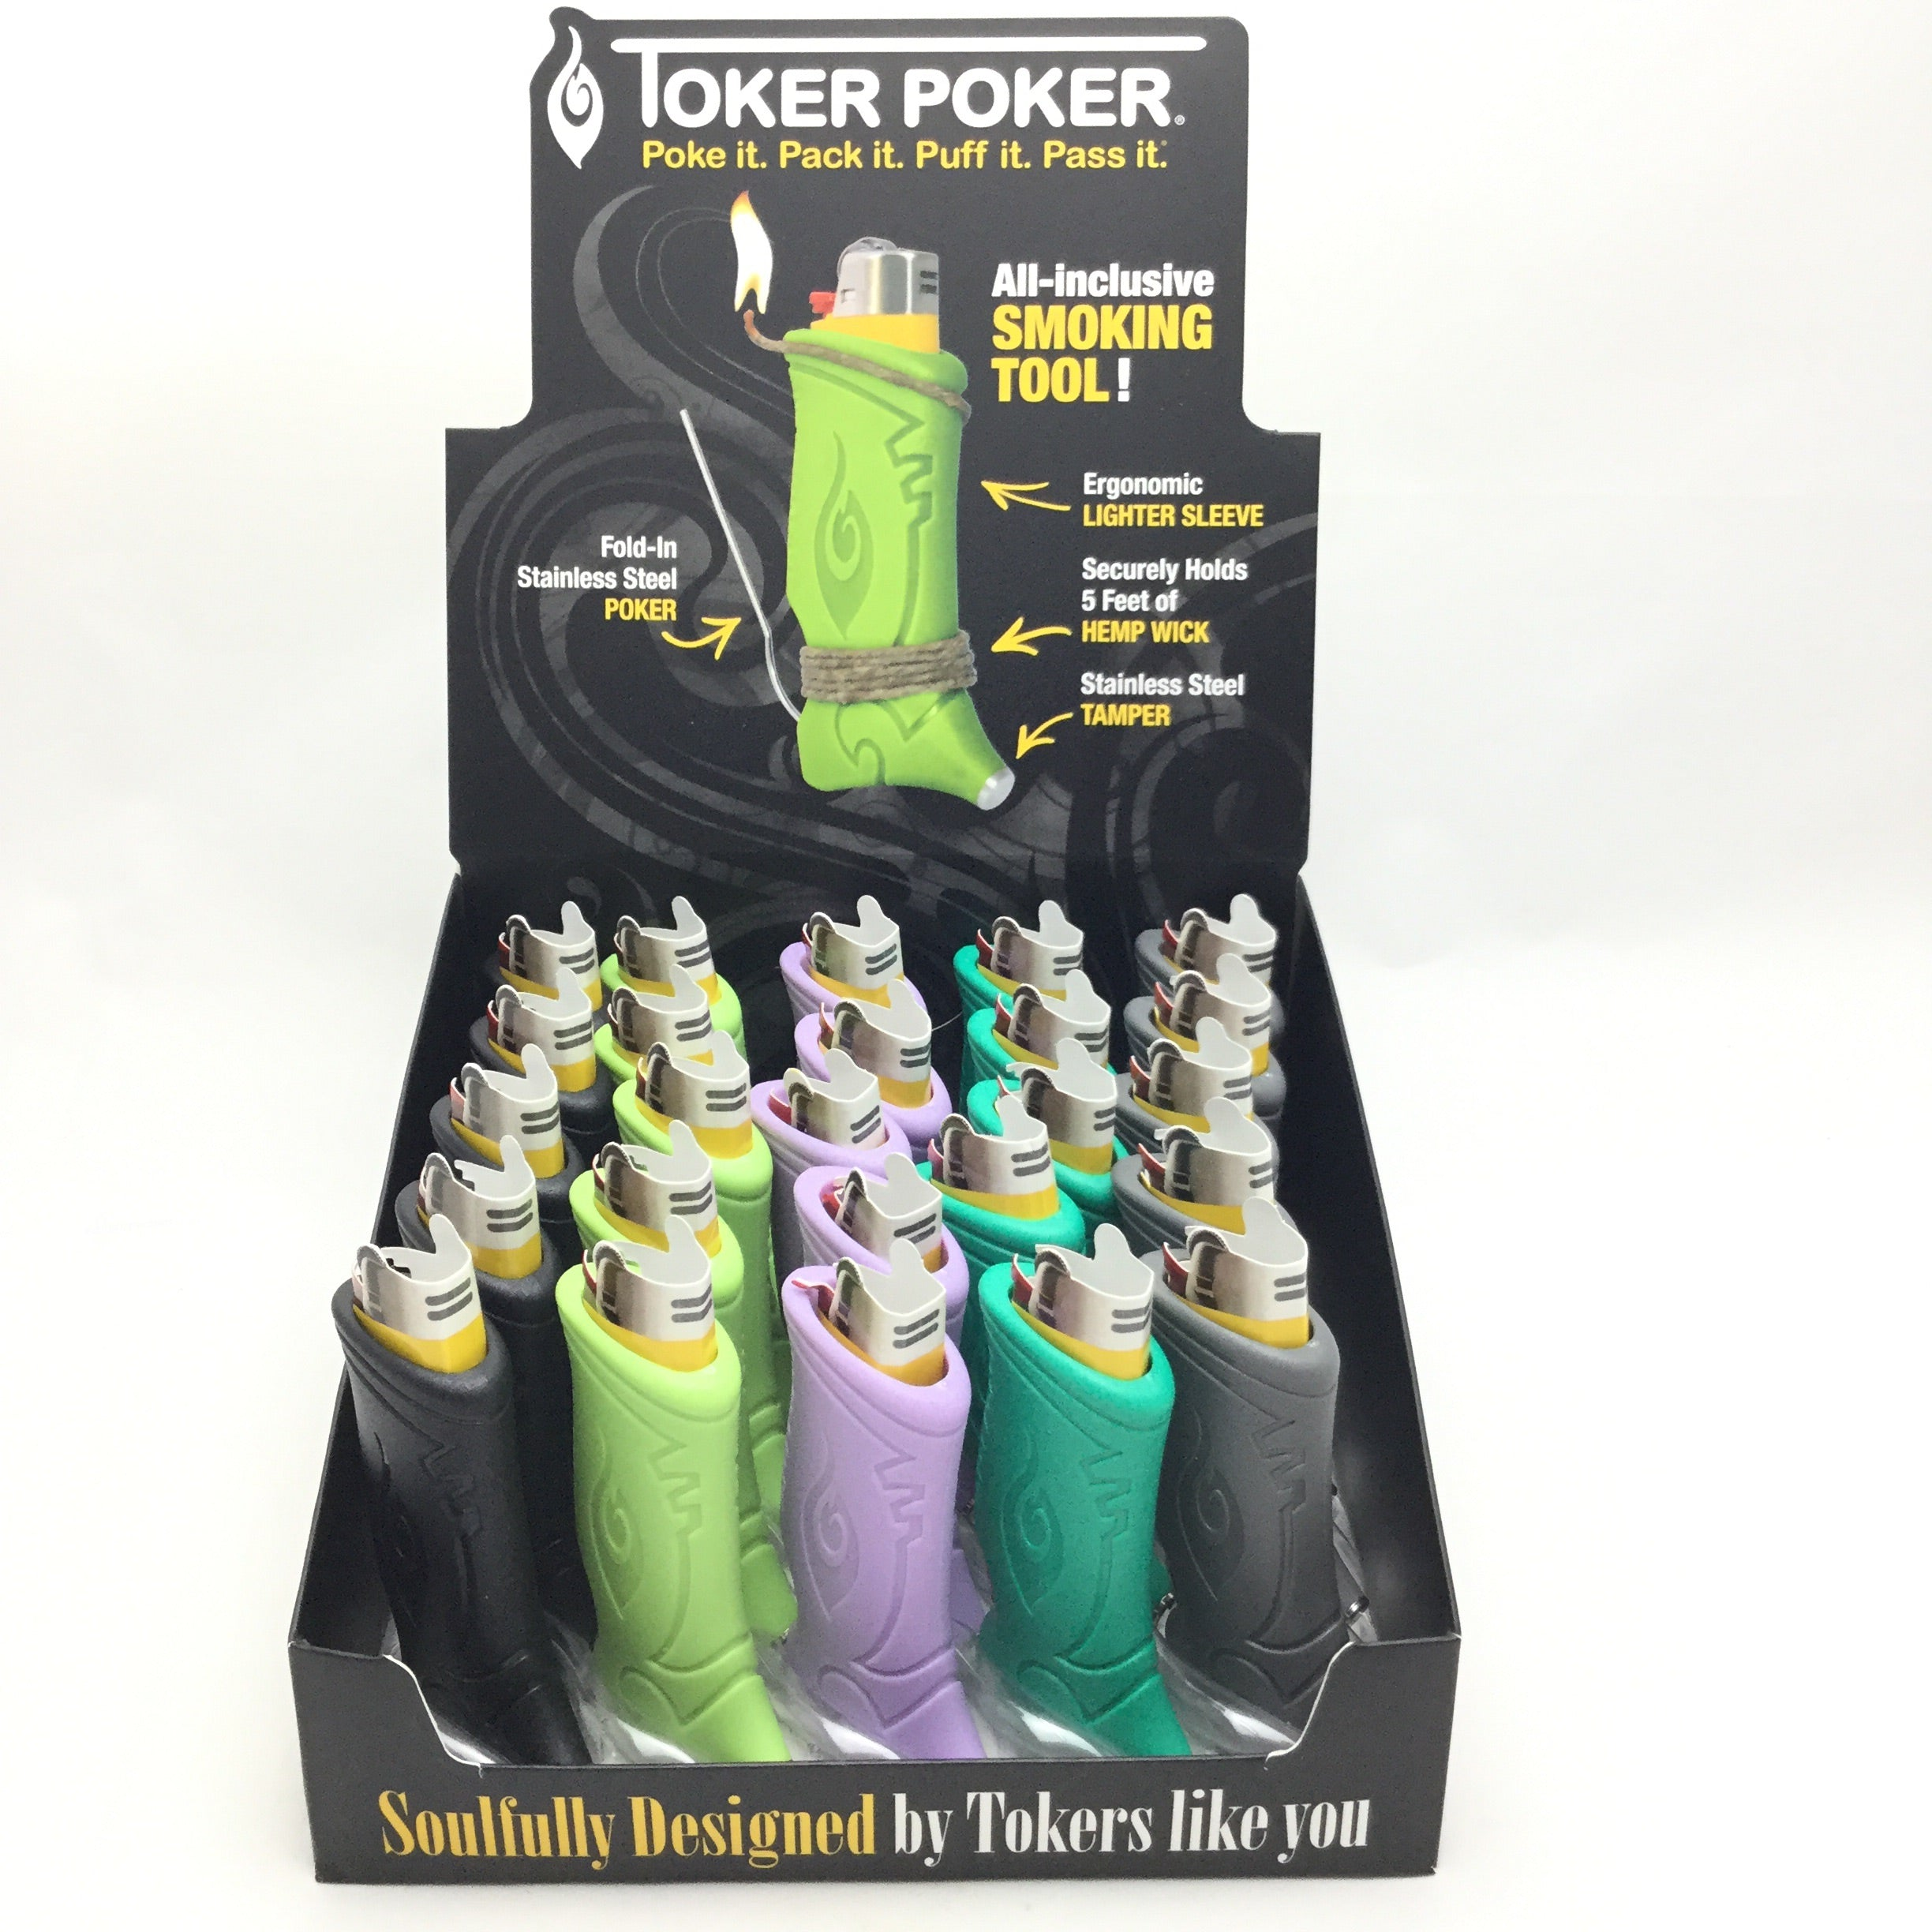 Toker poker canada geant casino tablette tactile polaroid